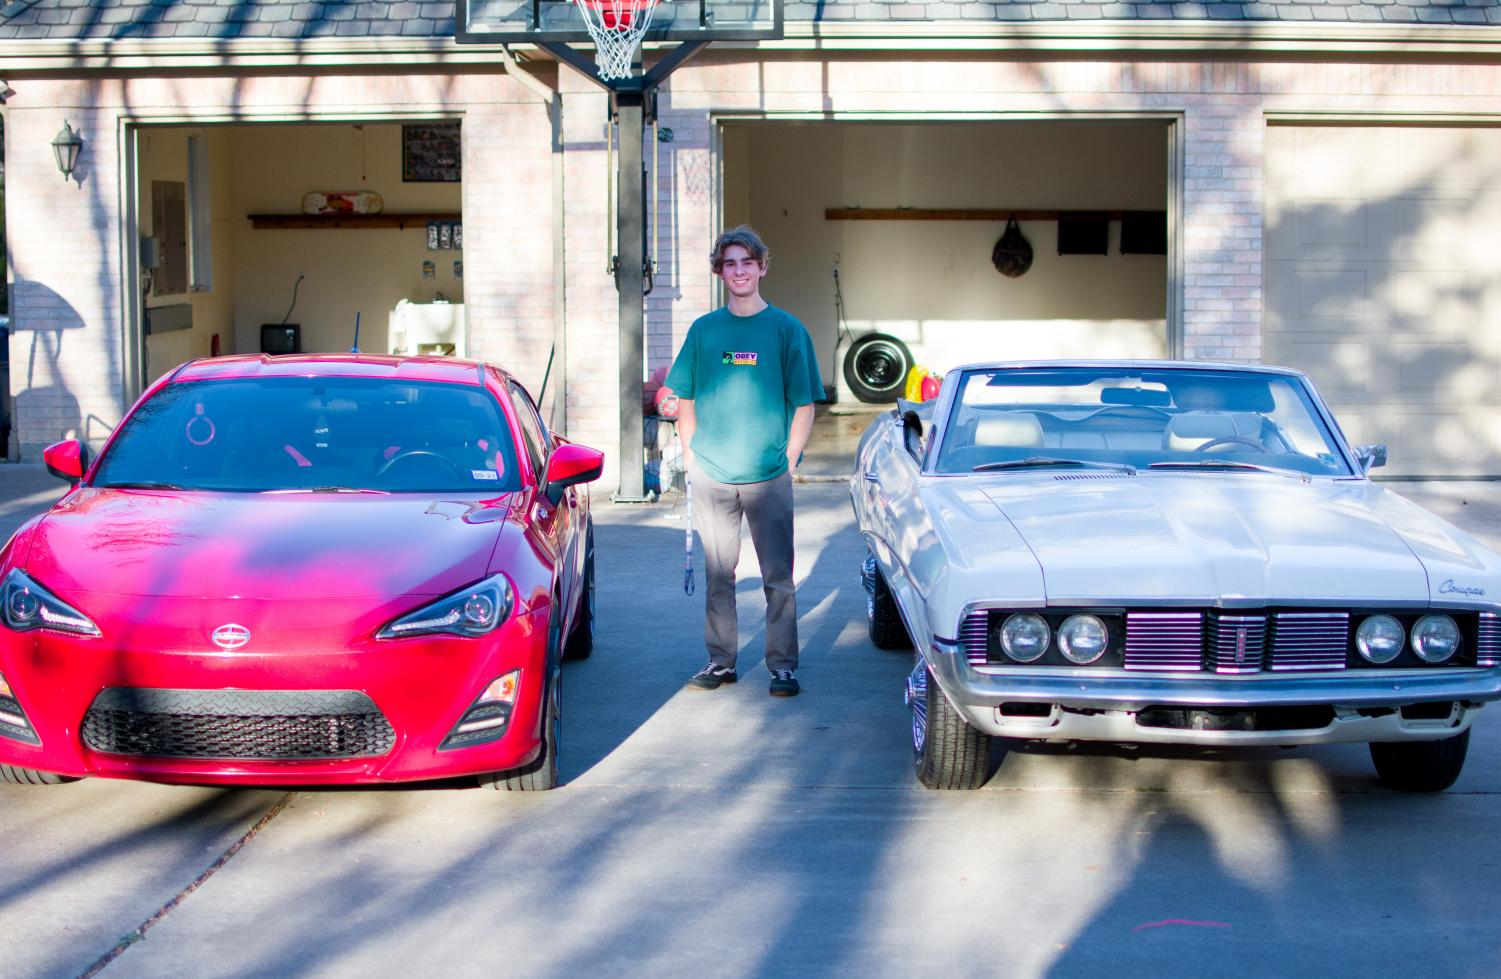 Junior Brendan burner stands next to his white 1969 Mercury Cougar Convertible and his red 2013 Scion FR-S. He bought the Mercury Cougar from his grandfather and has been working to get the car back together and working again.